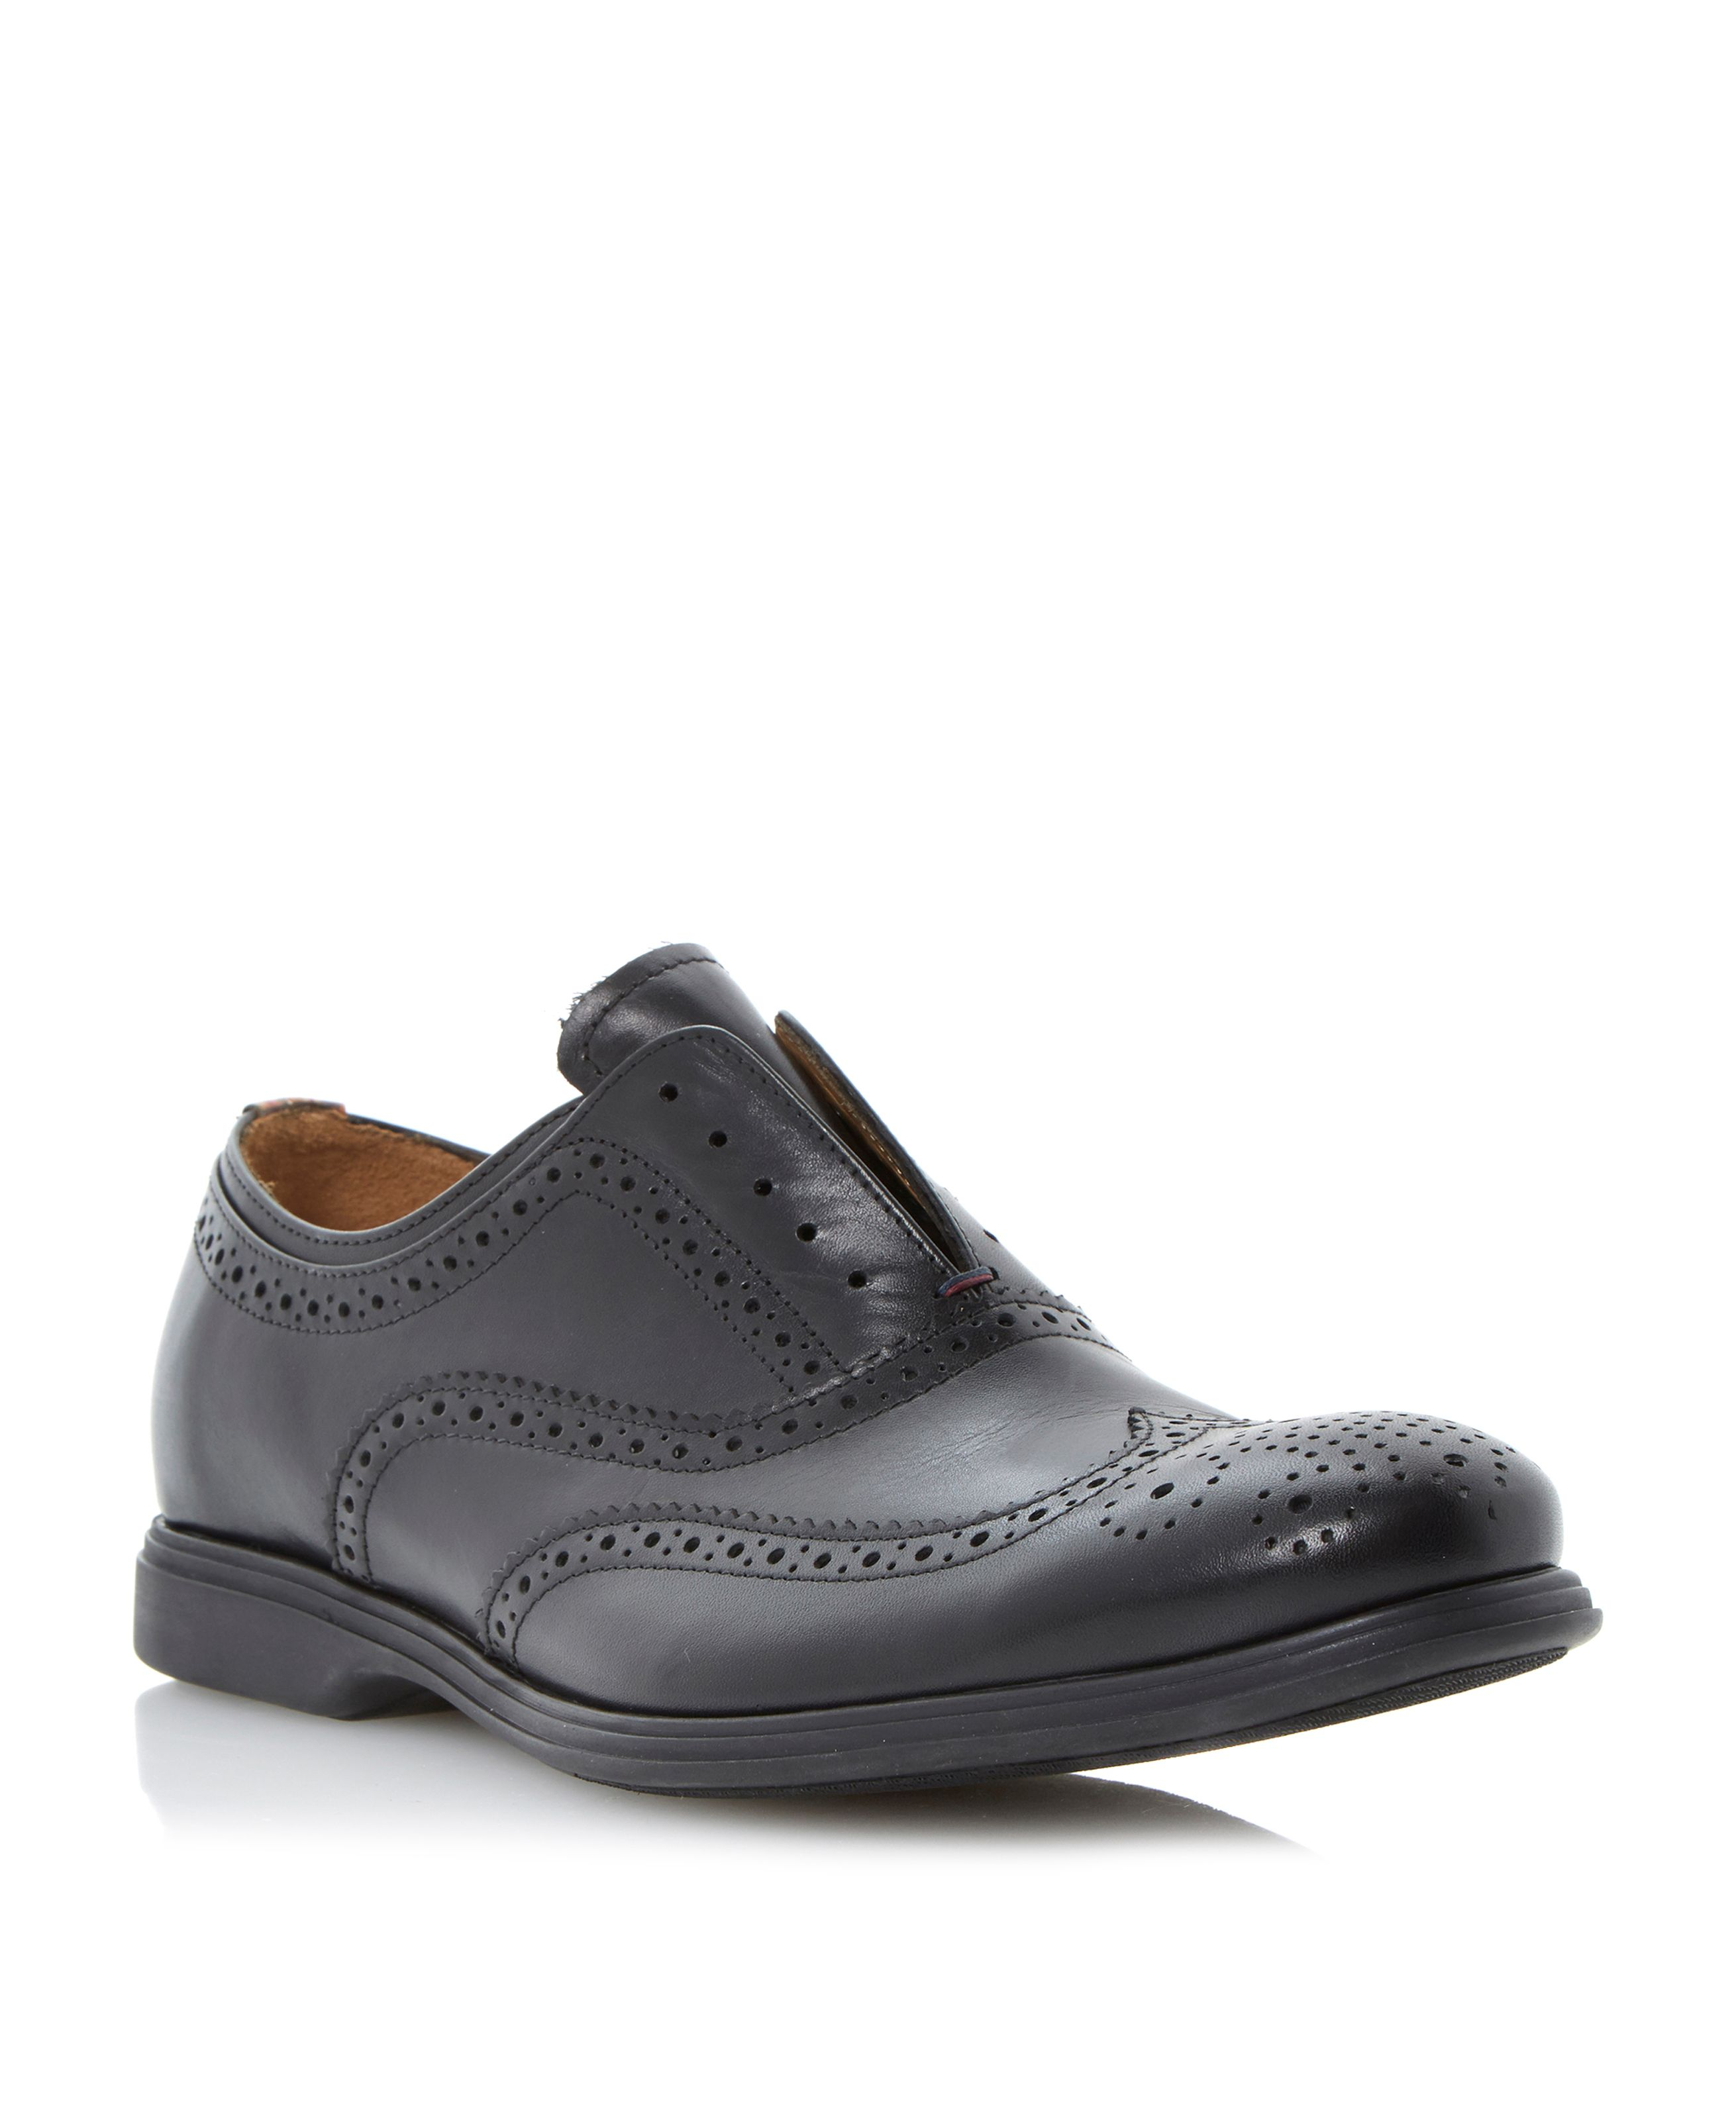 Carson  rubber sole wingtip oxford shoes